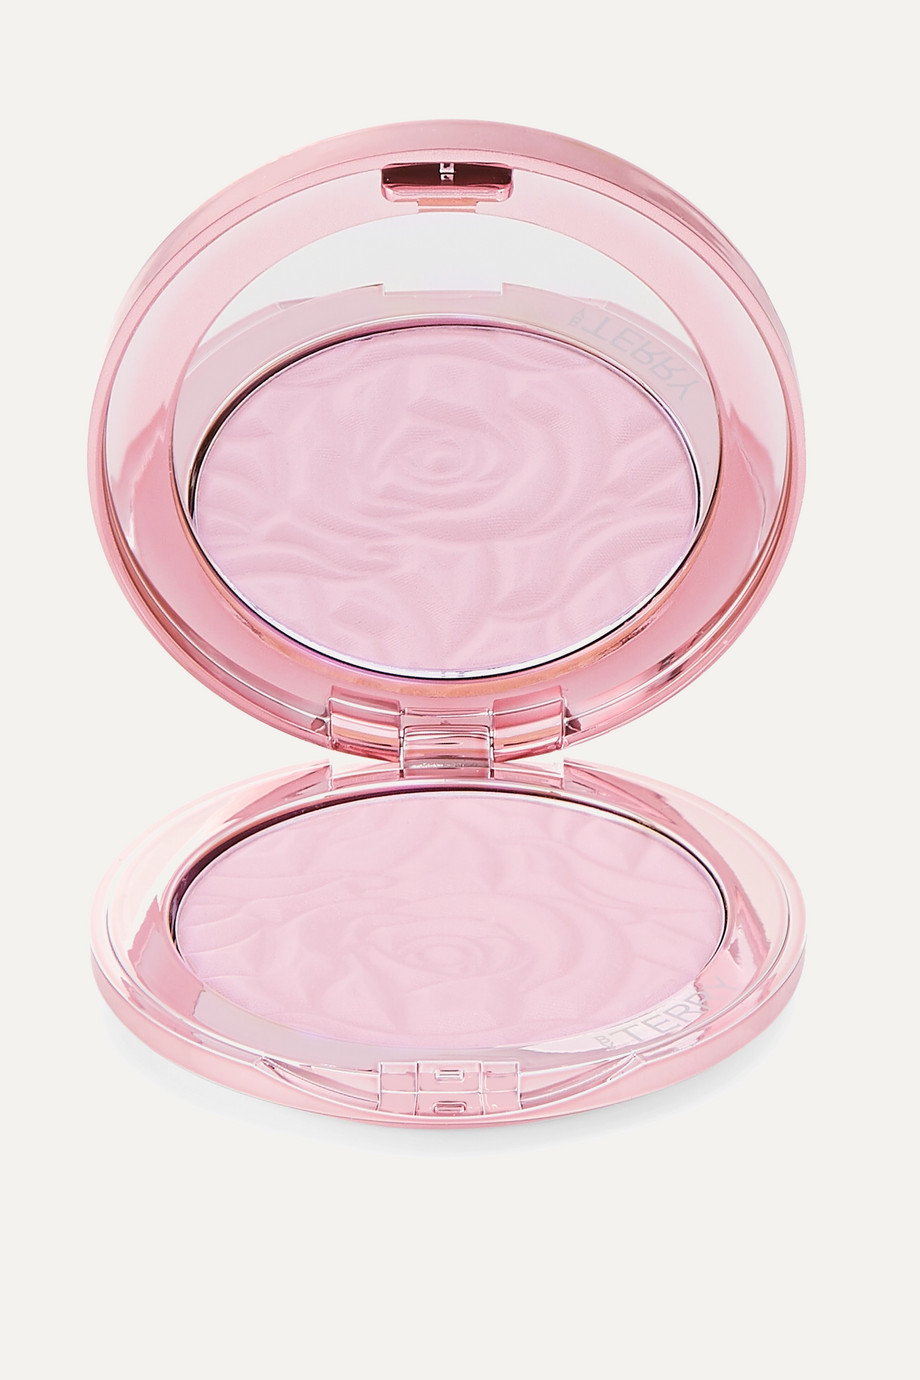 BY TERRY Brightening CC Powder - Rose Elixir No.2